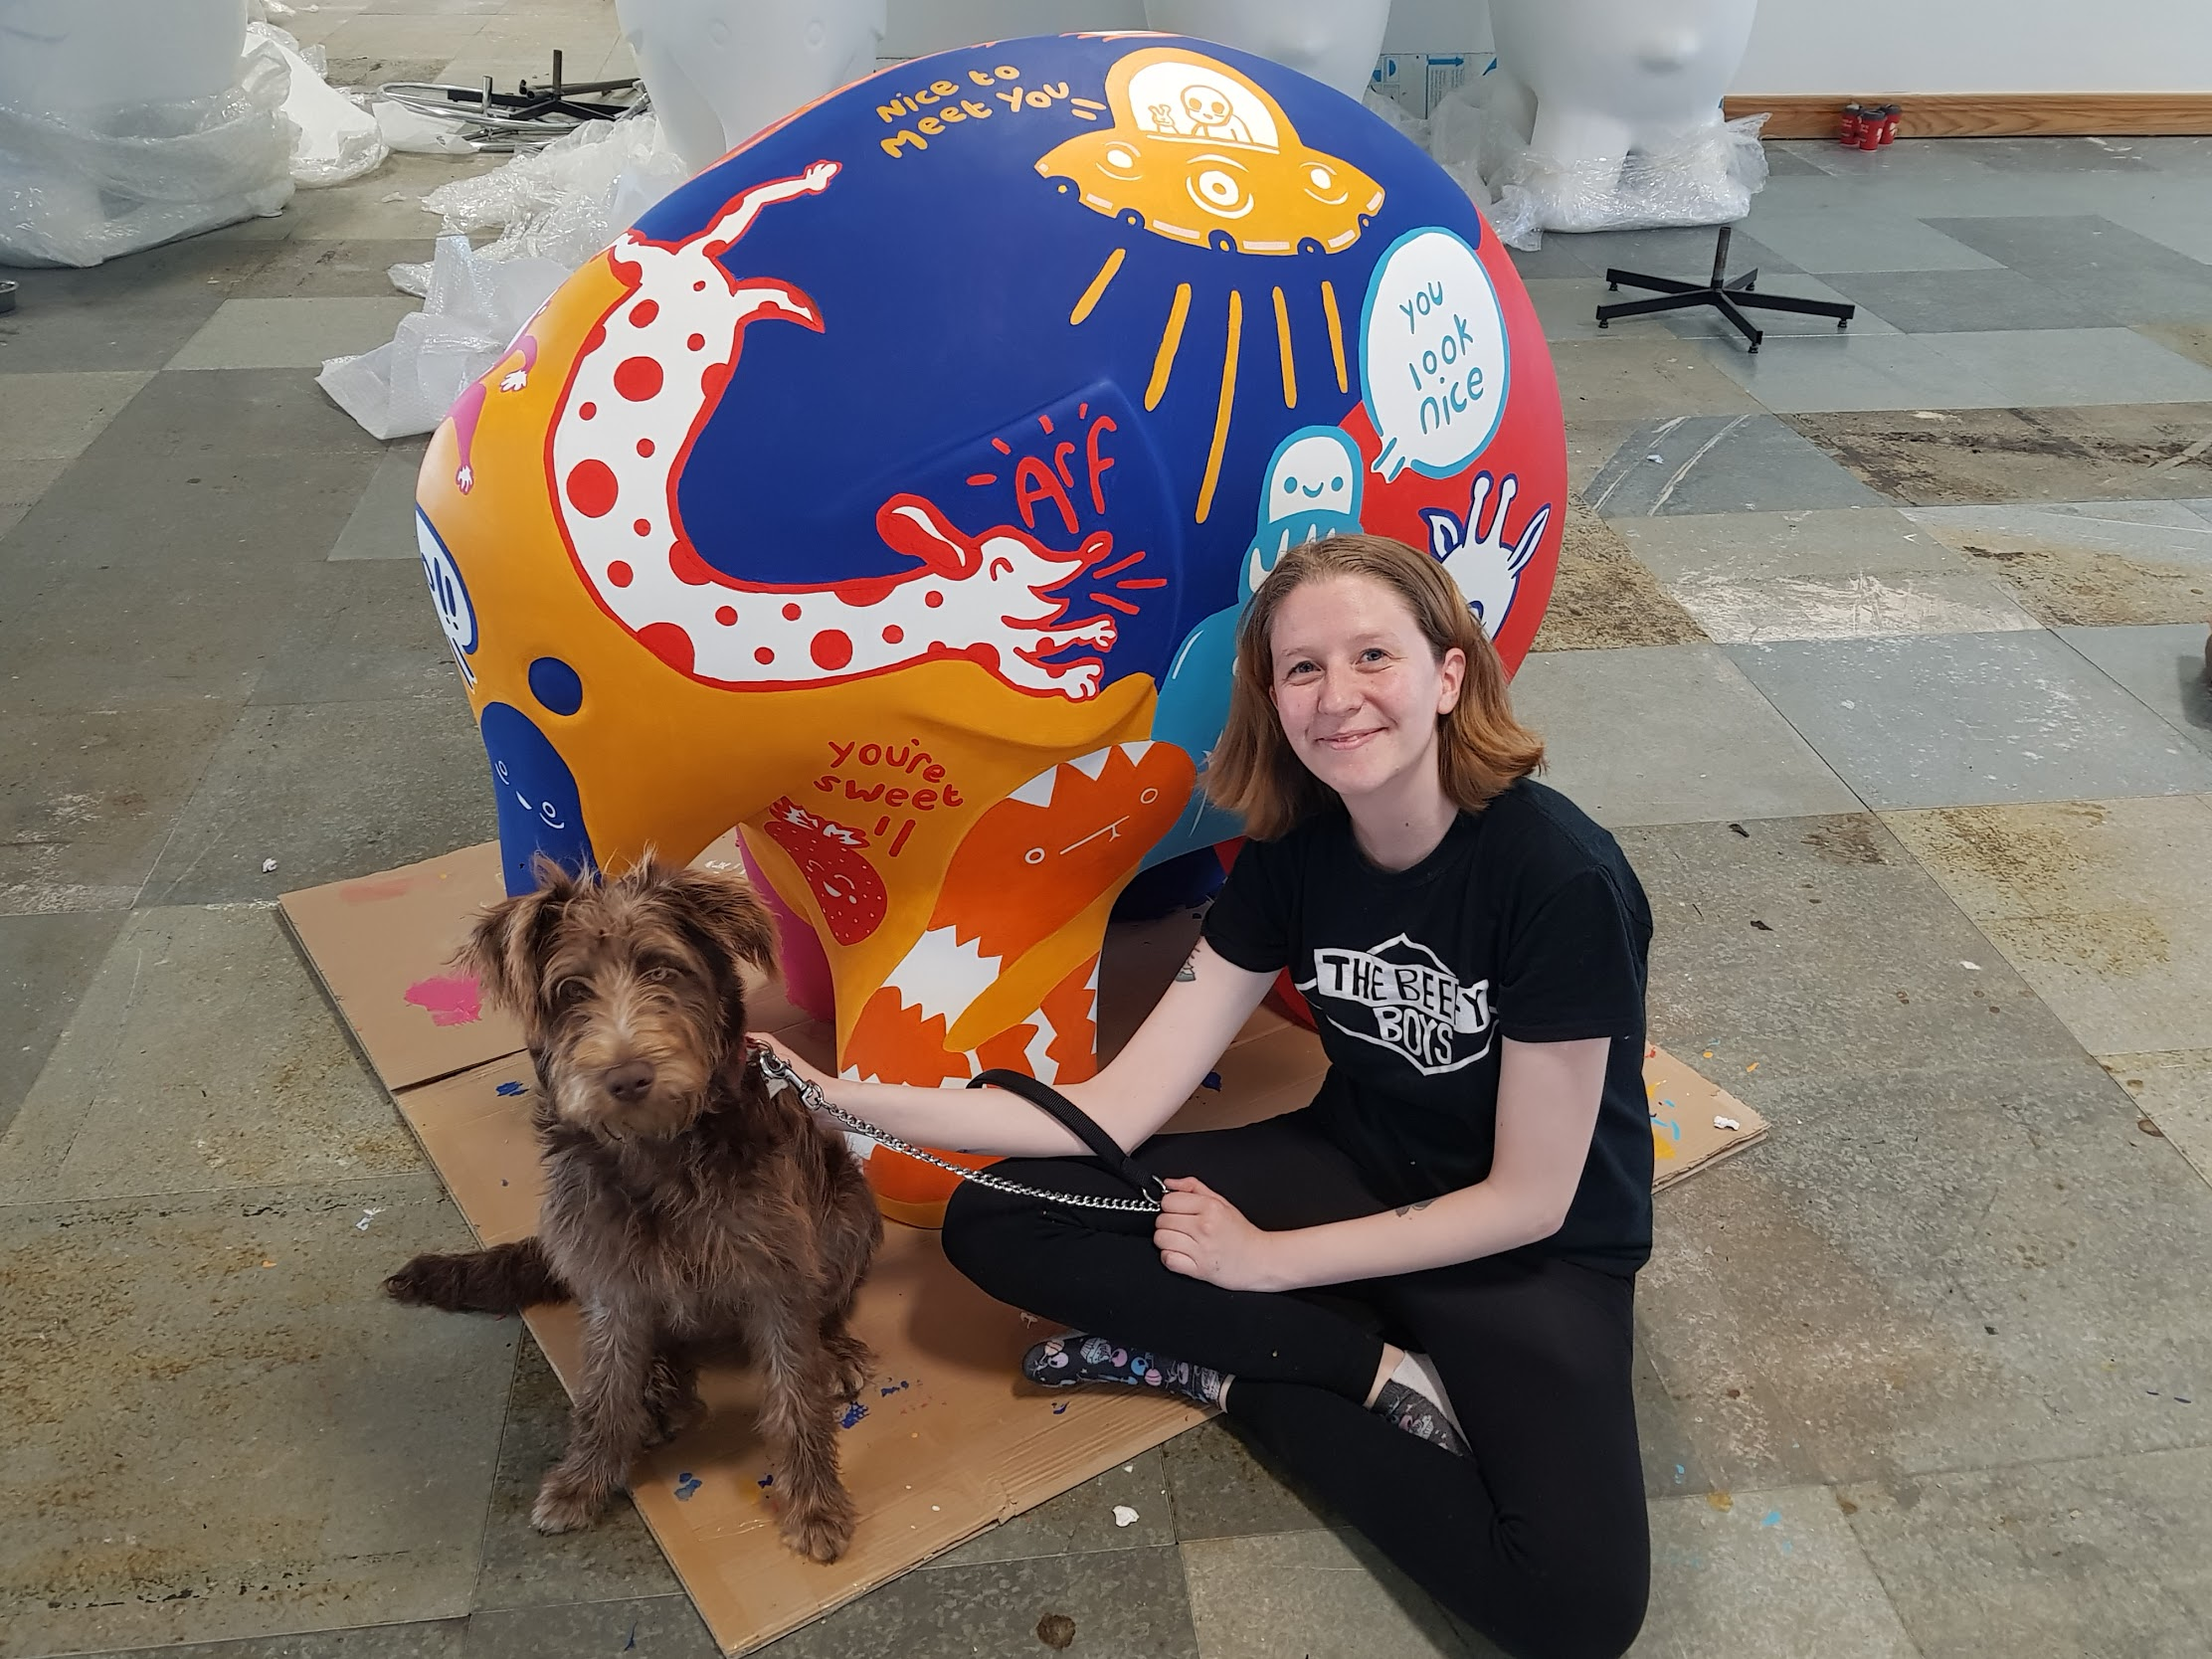 Press Release;  Local artist painted sculpture sales raise £57,000 for good Causes